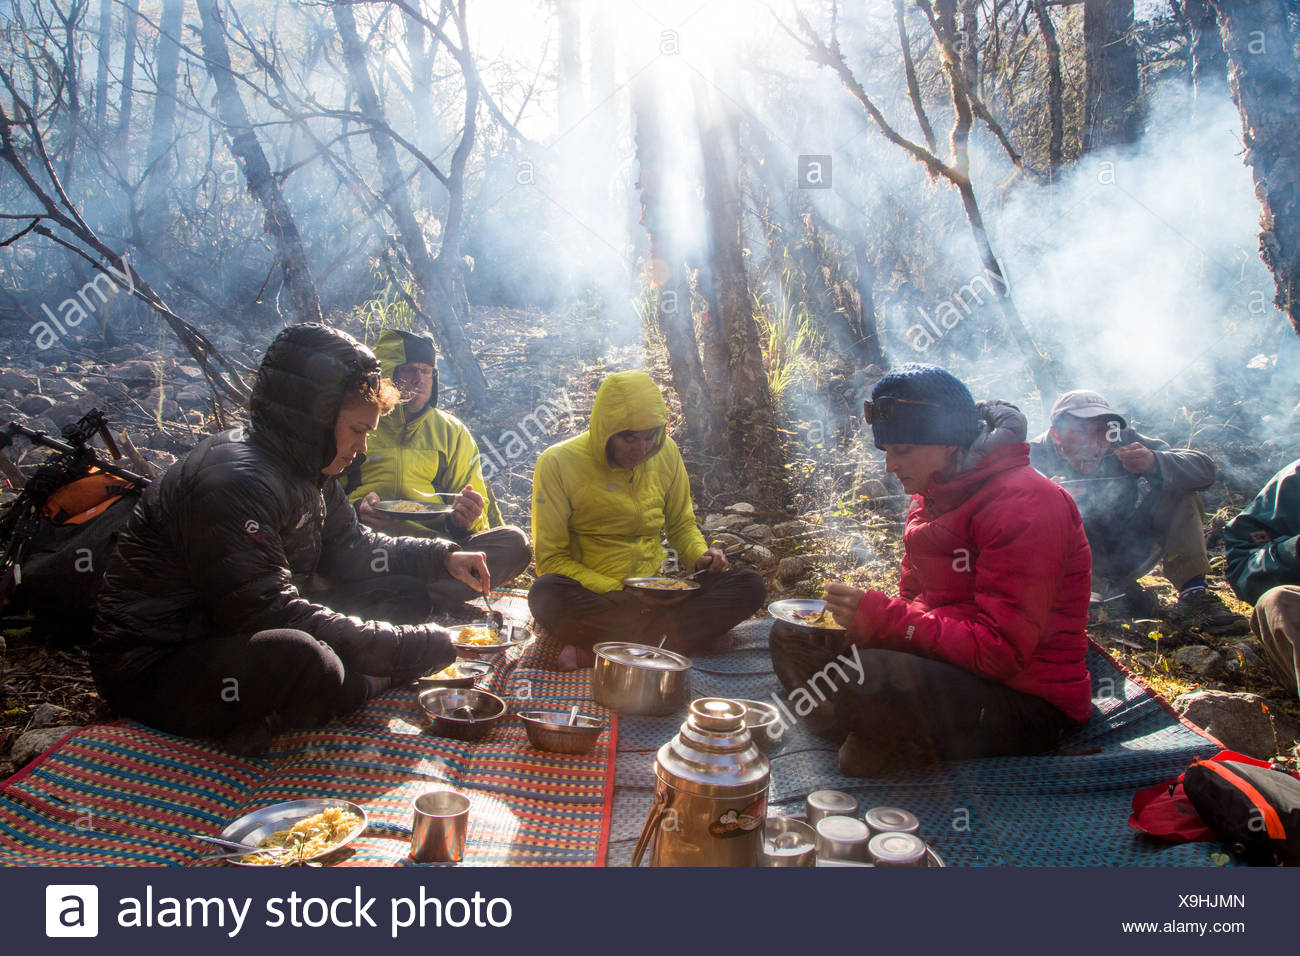 Expedition members sit around a campsite eating food. Stock Photo